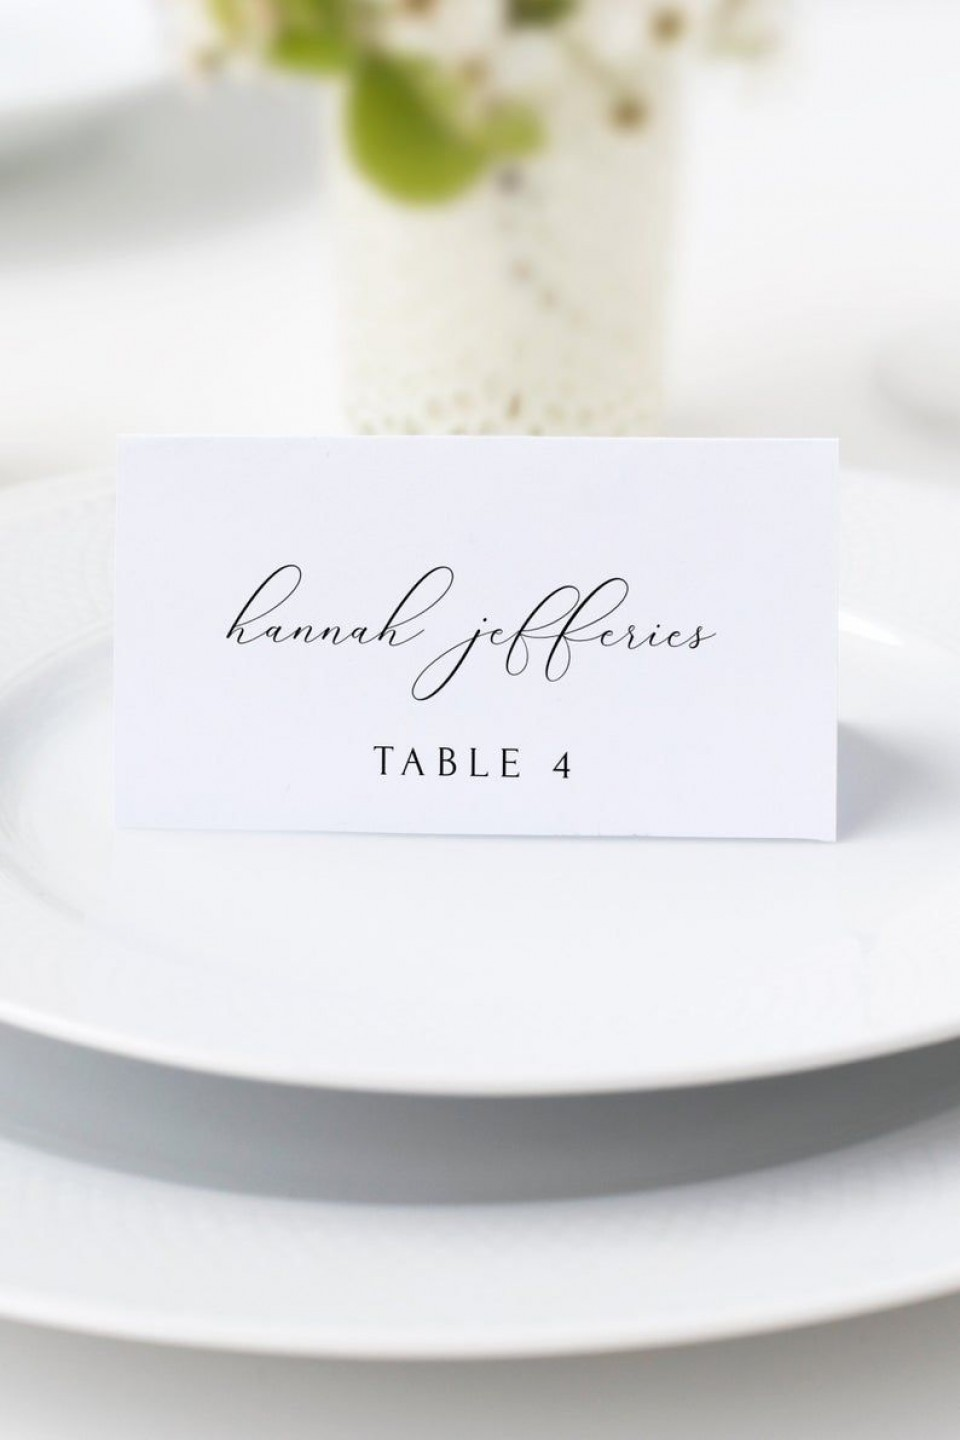 006 Fantastic Wedding Name Card Template Picture  Seating Chart Place Free960